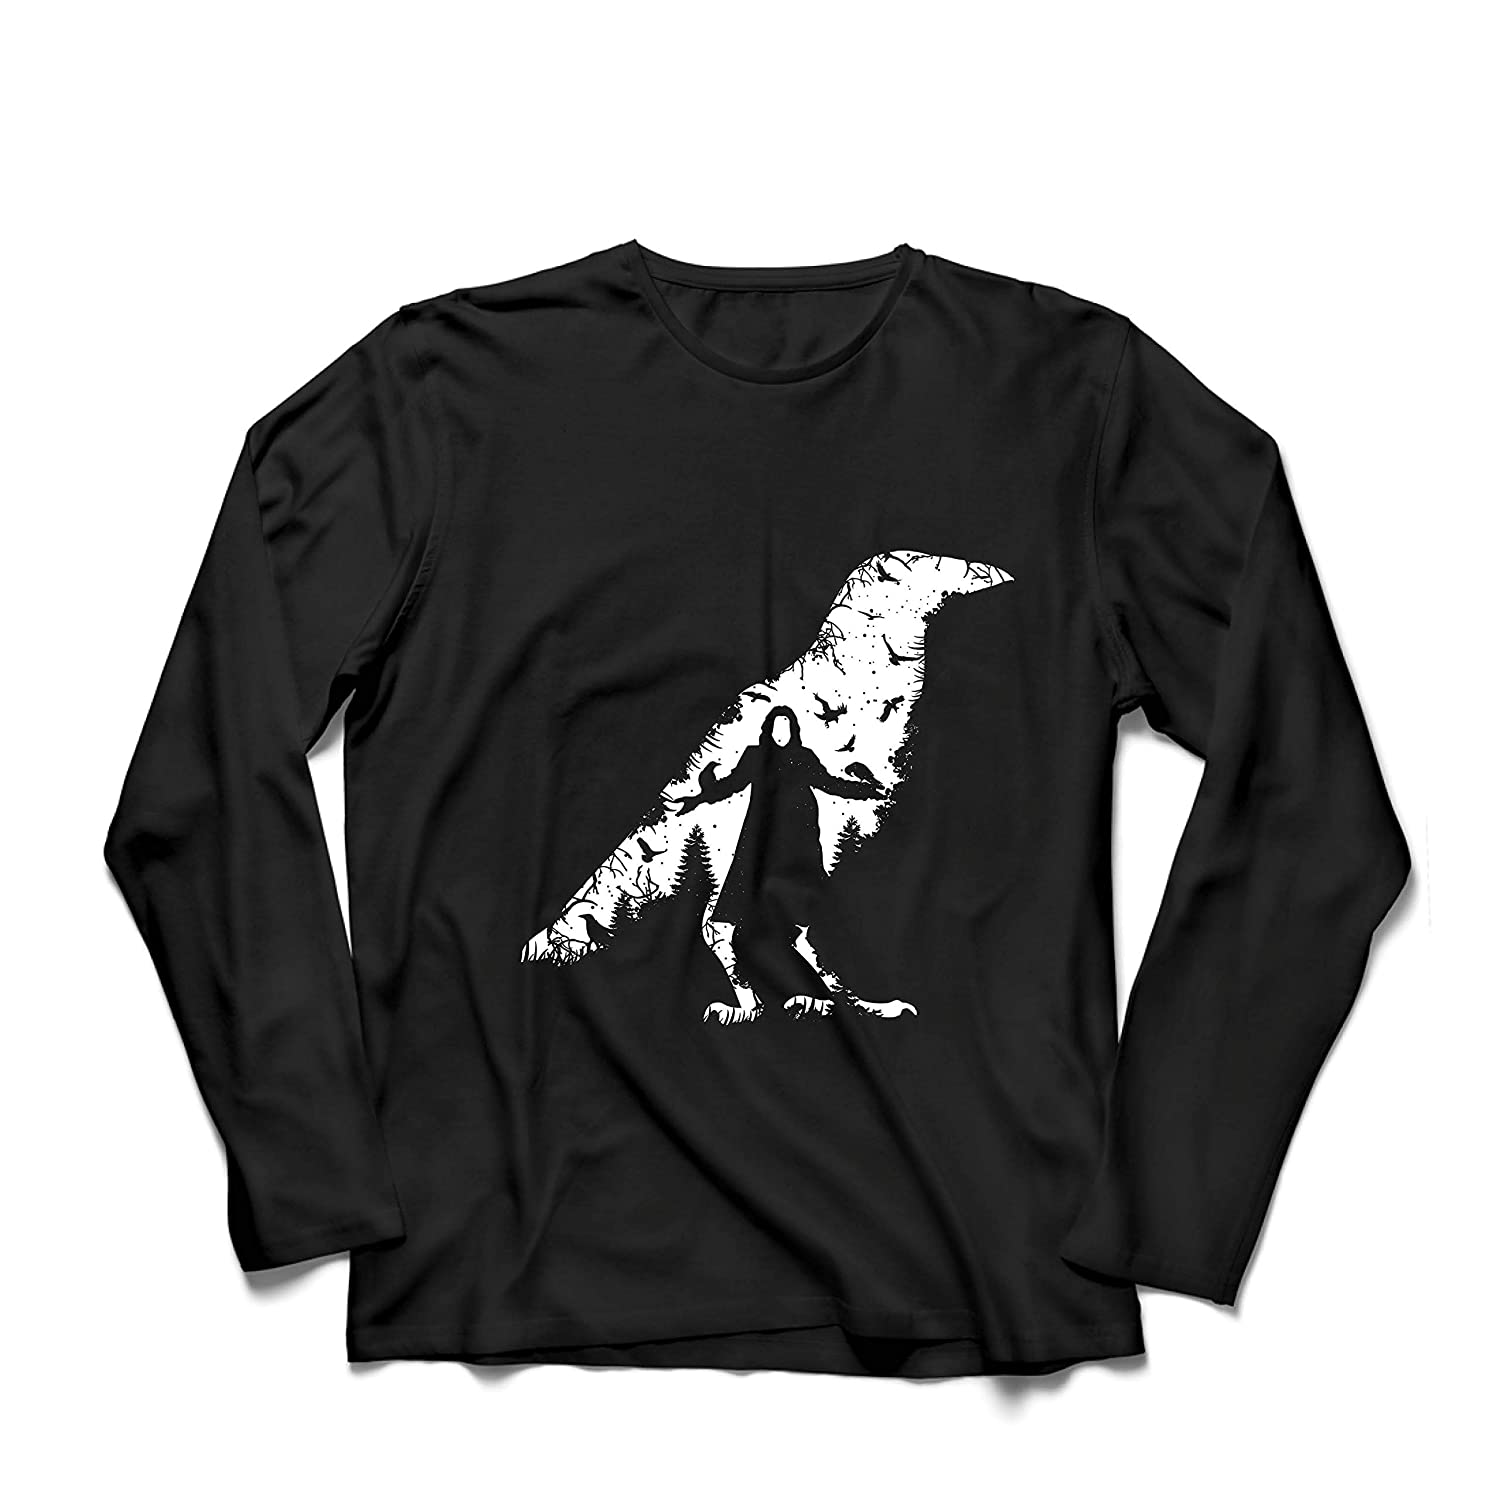 lepni.me Men/'s T-Shirt The Crow The Dead and The Lost Souls